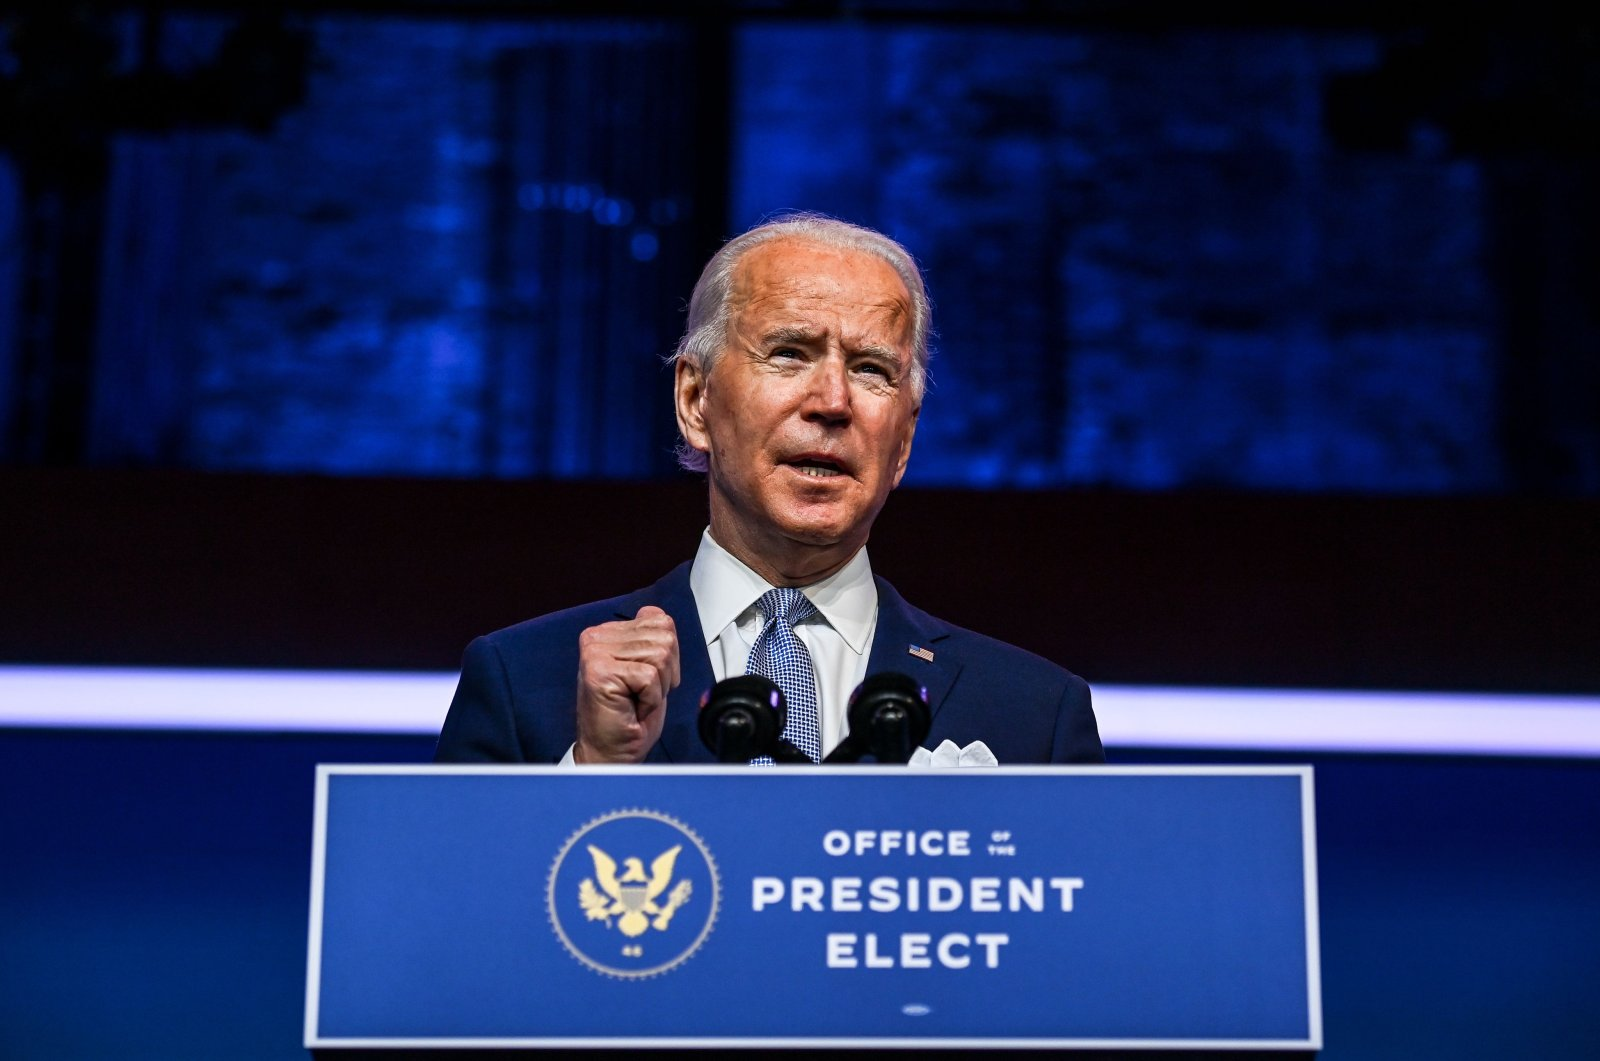 In this file photo taken on November 24, 2020 US President-elect Joe Biden speaks during a cabinet announcement event in Wilmington, Delaware. (AFP Photo)